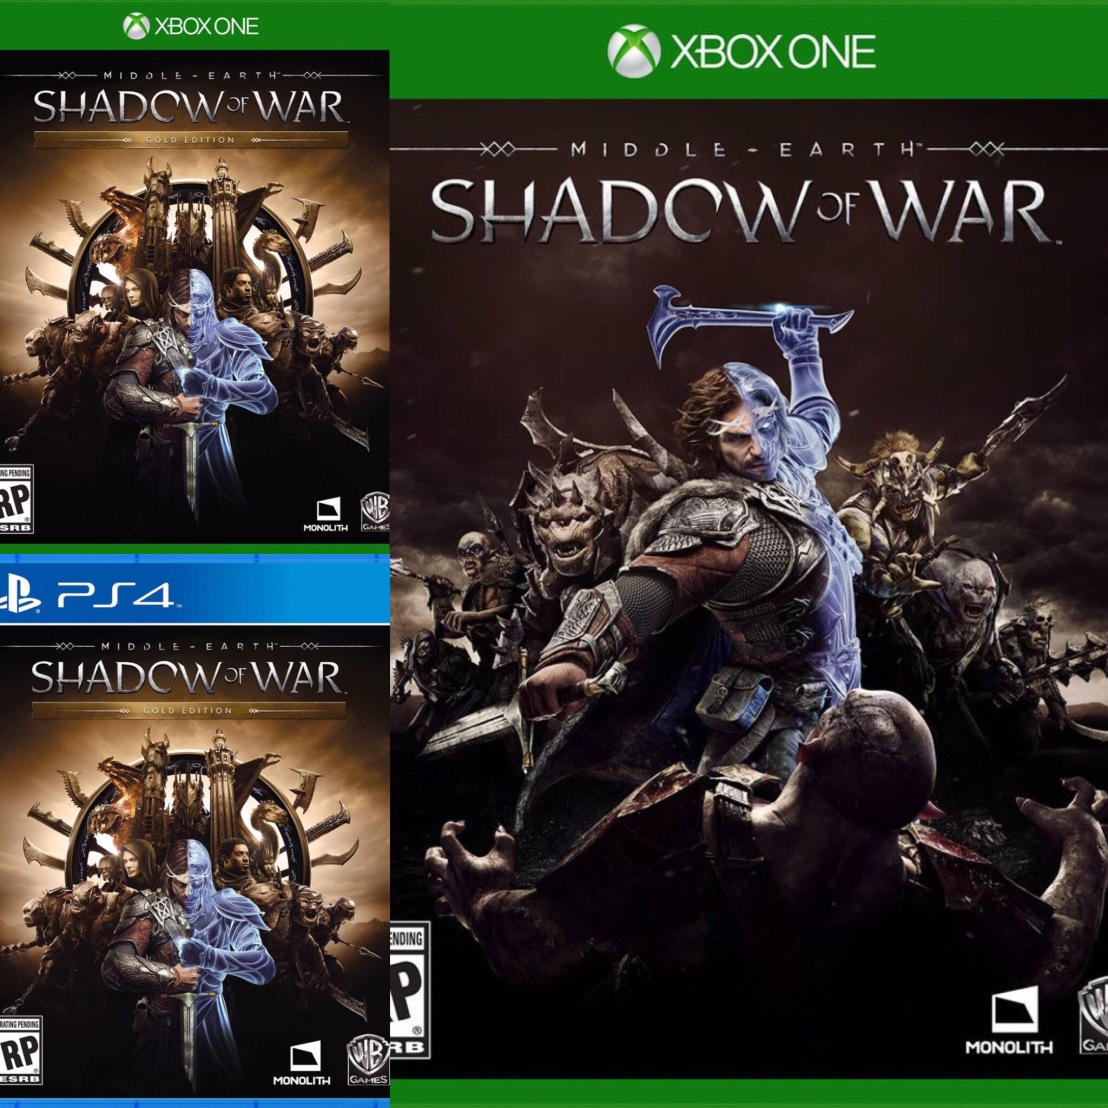 Game Leaks Continue for WB as Middle Earth: Shadow of War leaks via a Target website